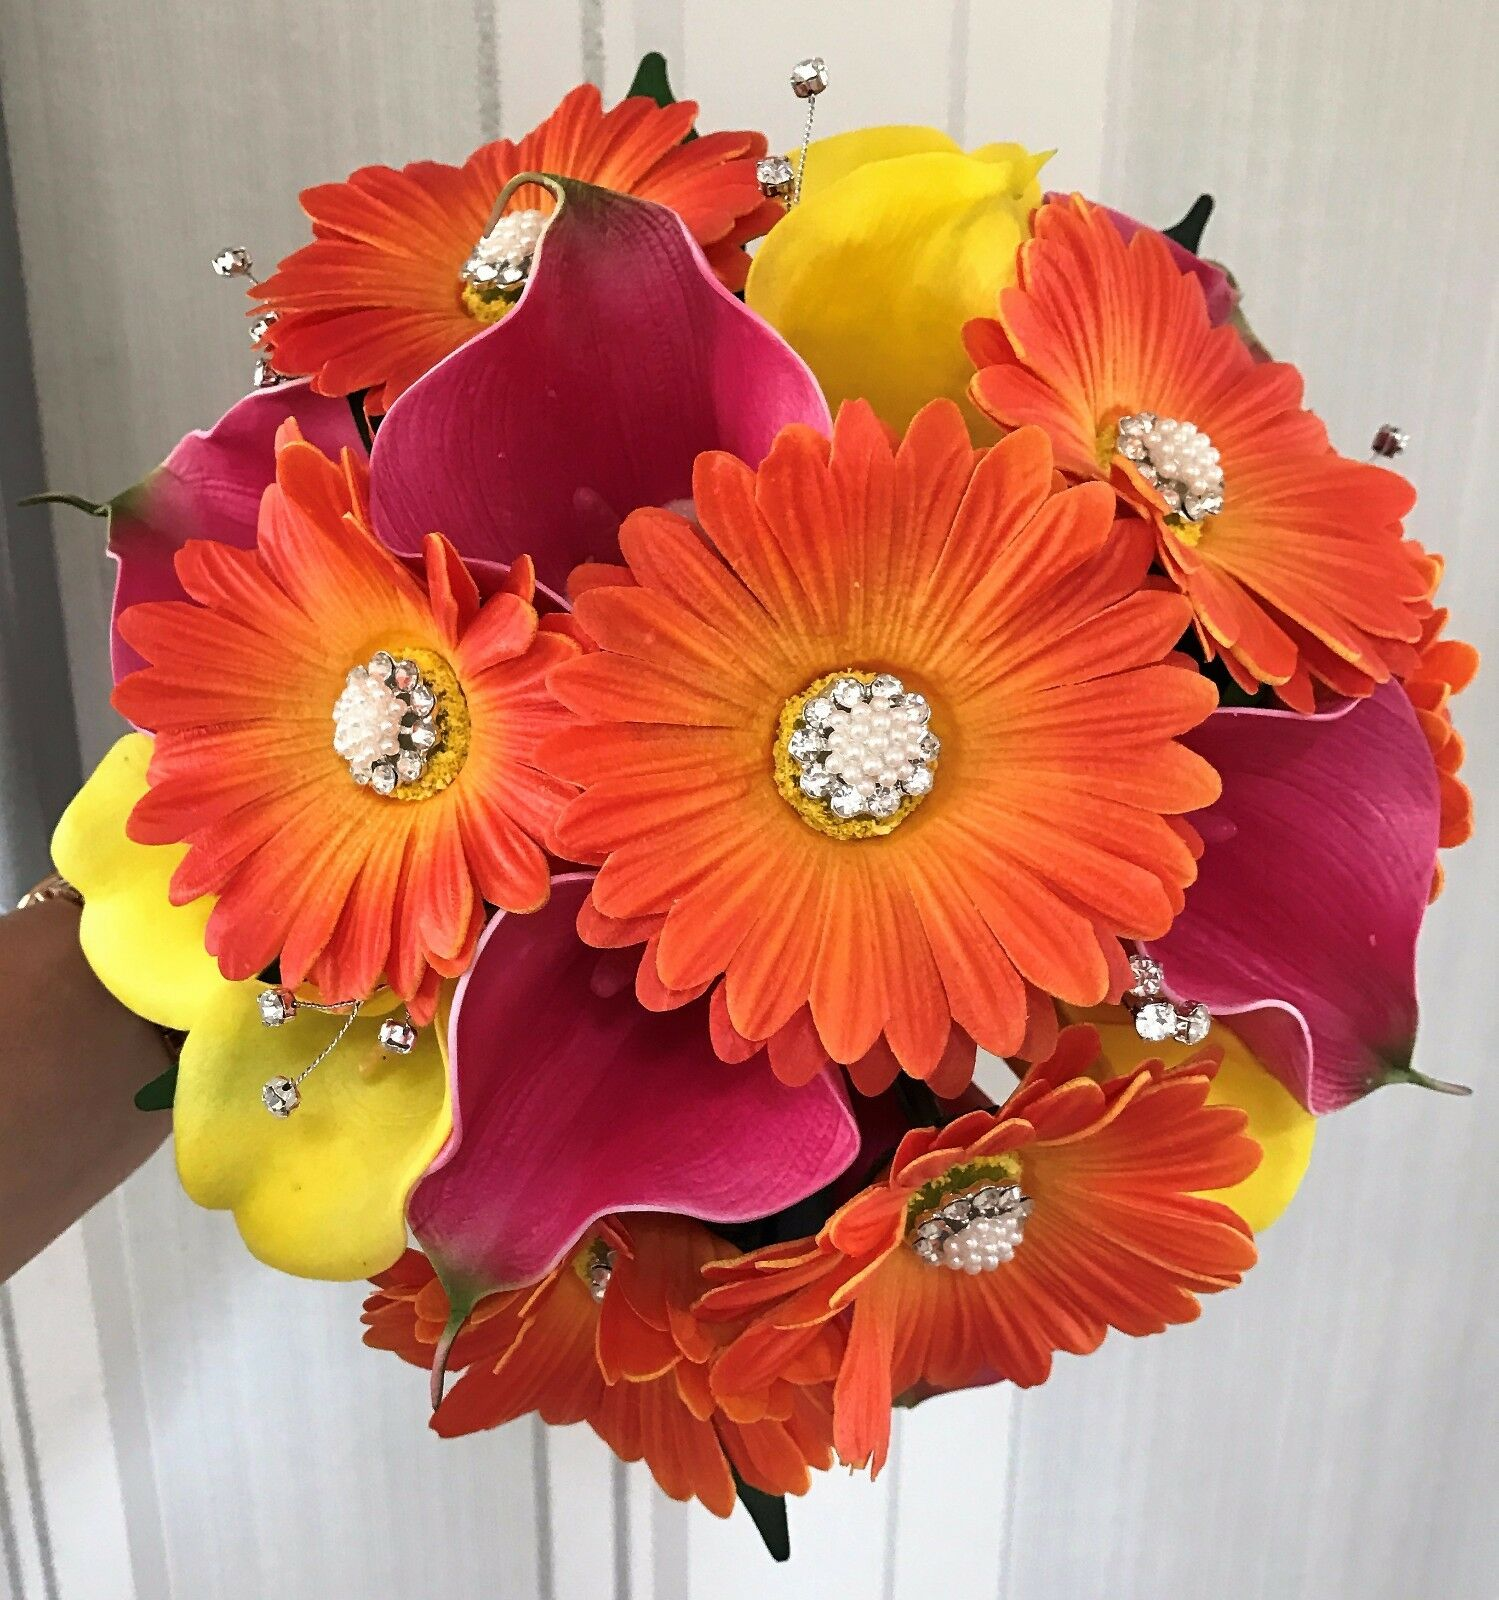 Wedding  Posy Bouquet, Brides Flowers made with tropical 'real touch' flowers